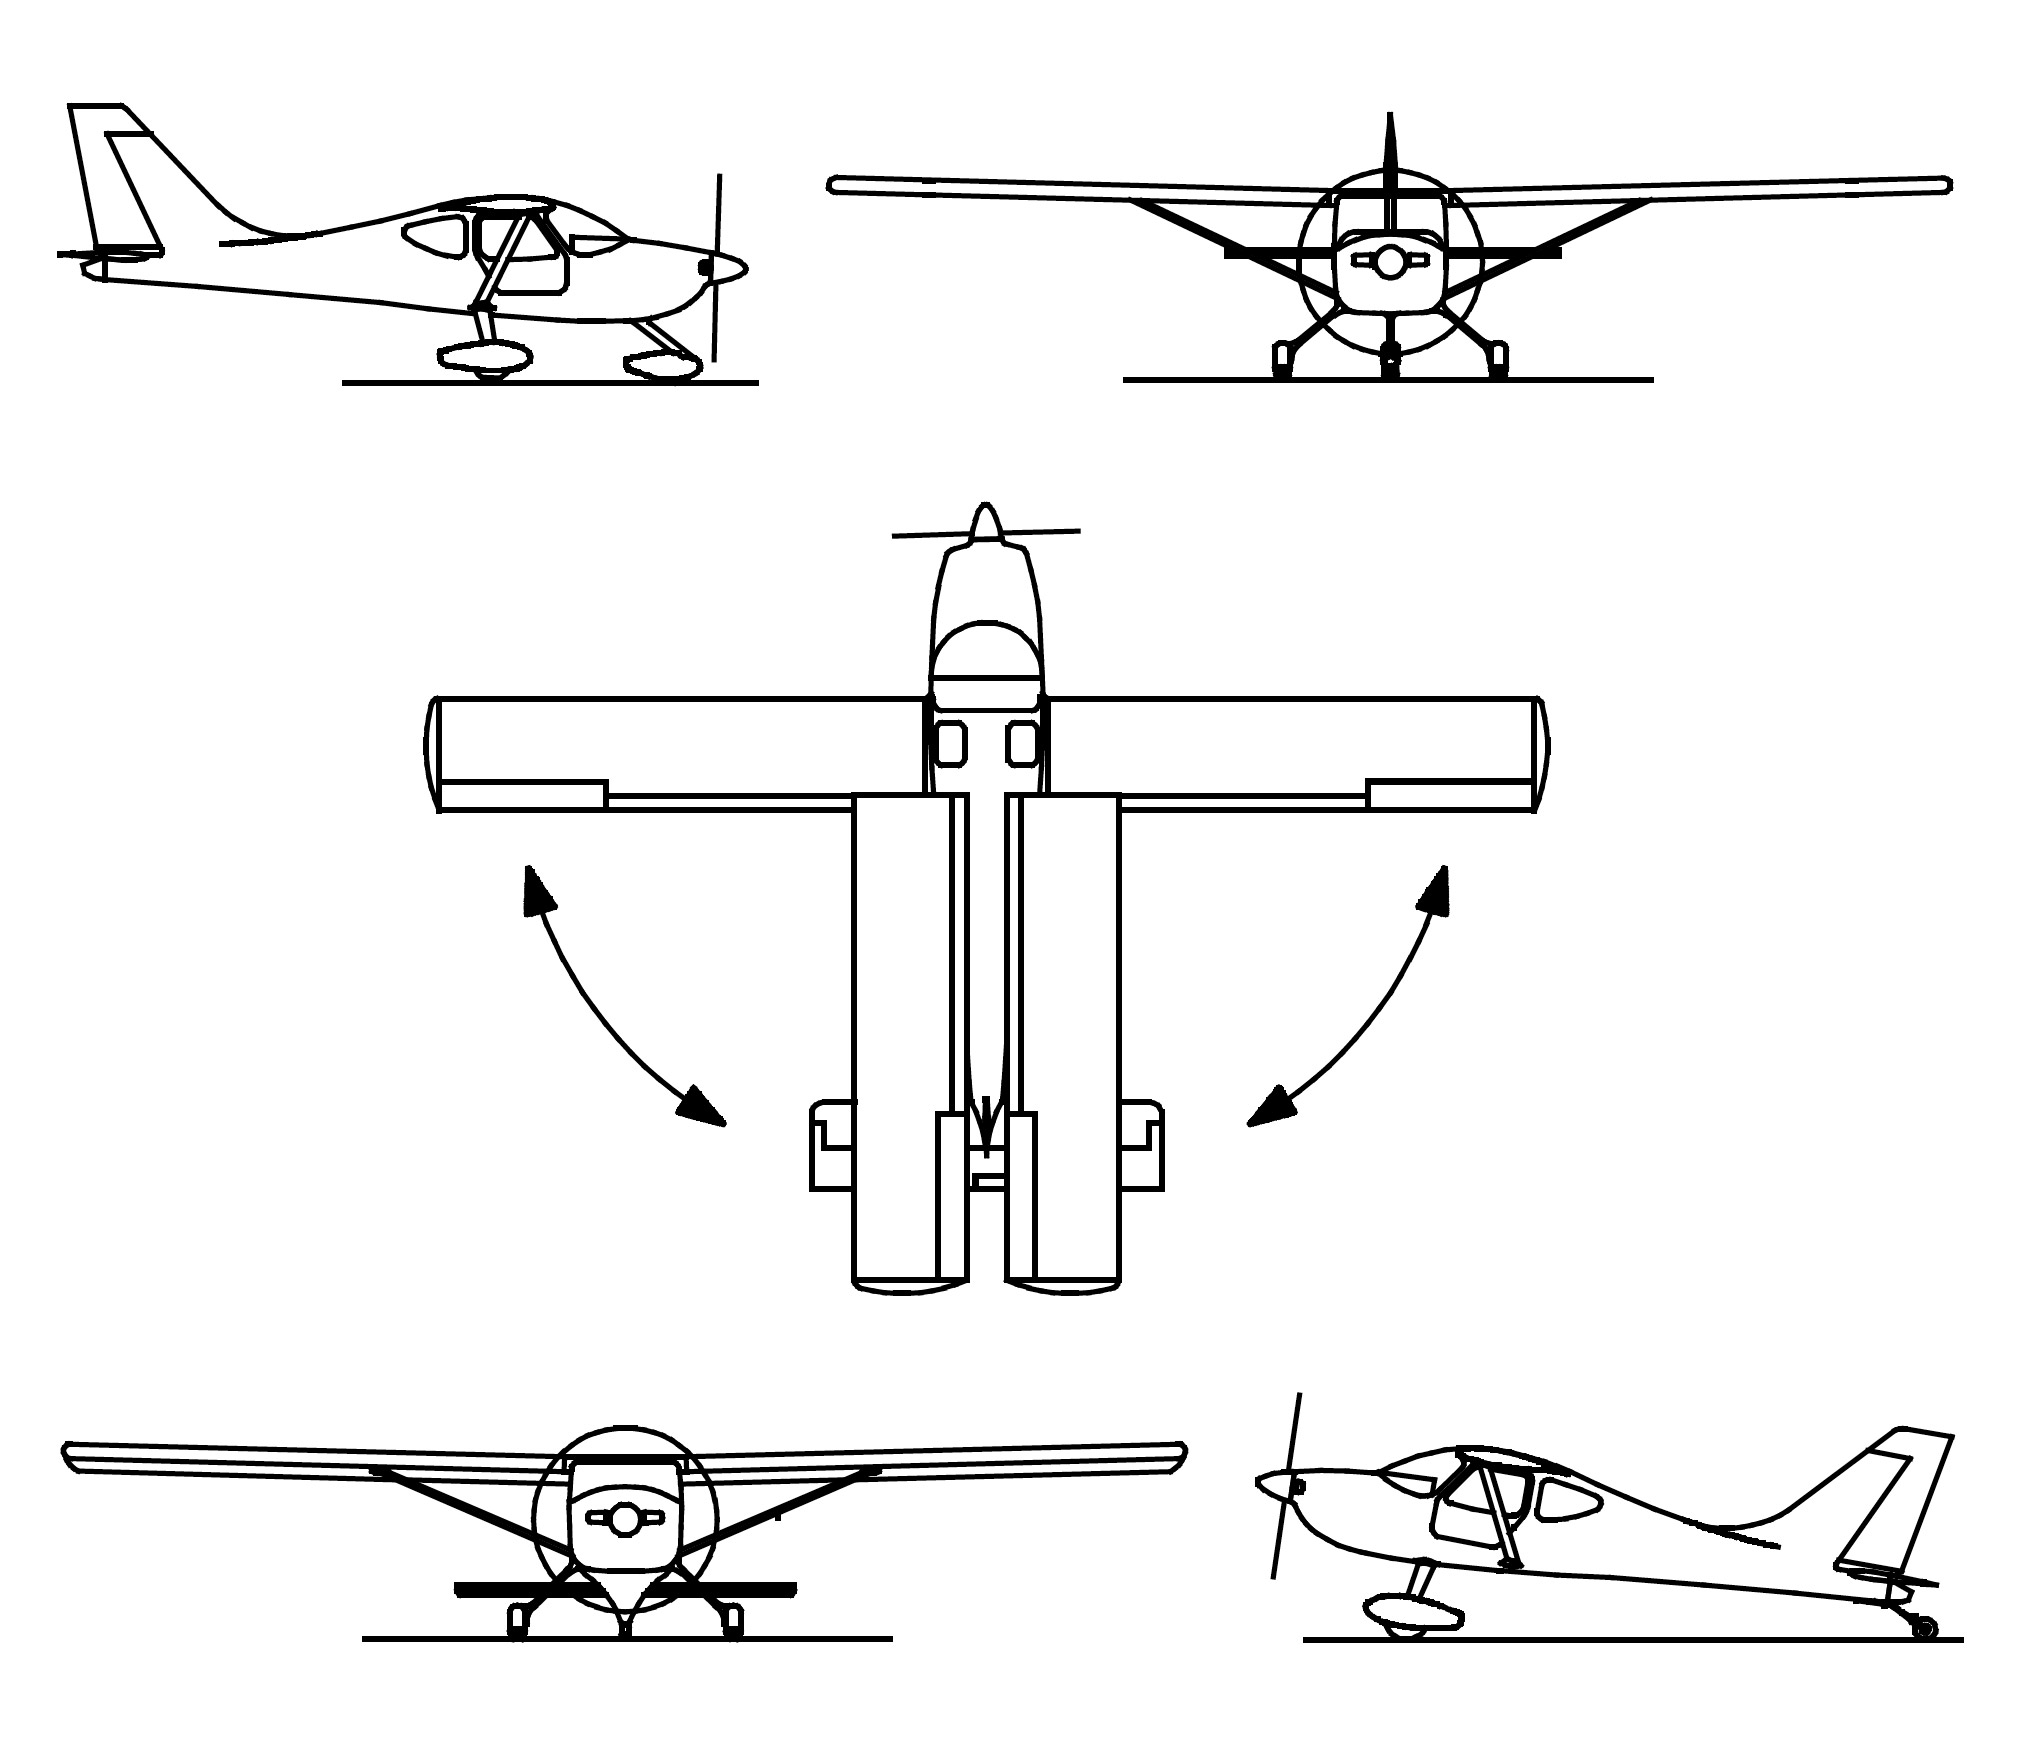 Glastar Specifications And Performance Glasair Aircraft Owners Plane Wing Diagram Weights Of Amateur Built Will Vary With Construction Technique Equipment Customer Reported Empty Have Varied From Approximately 1140